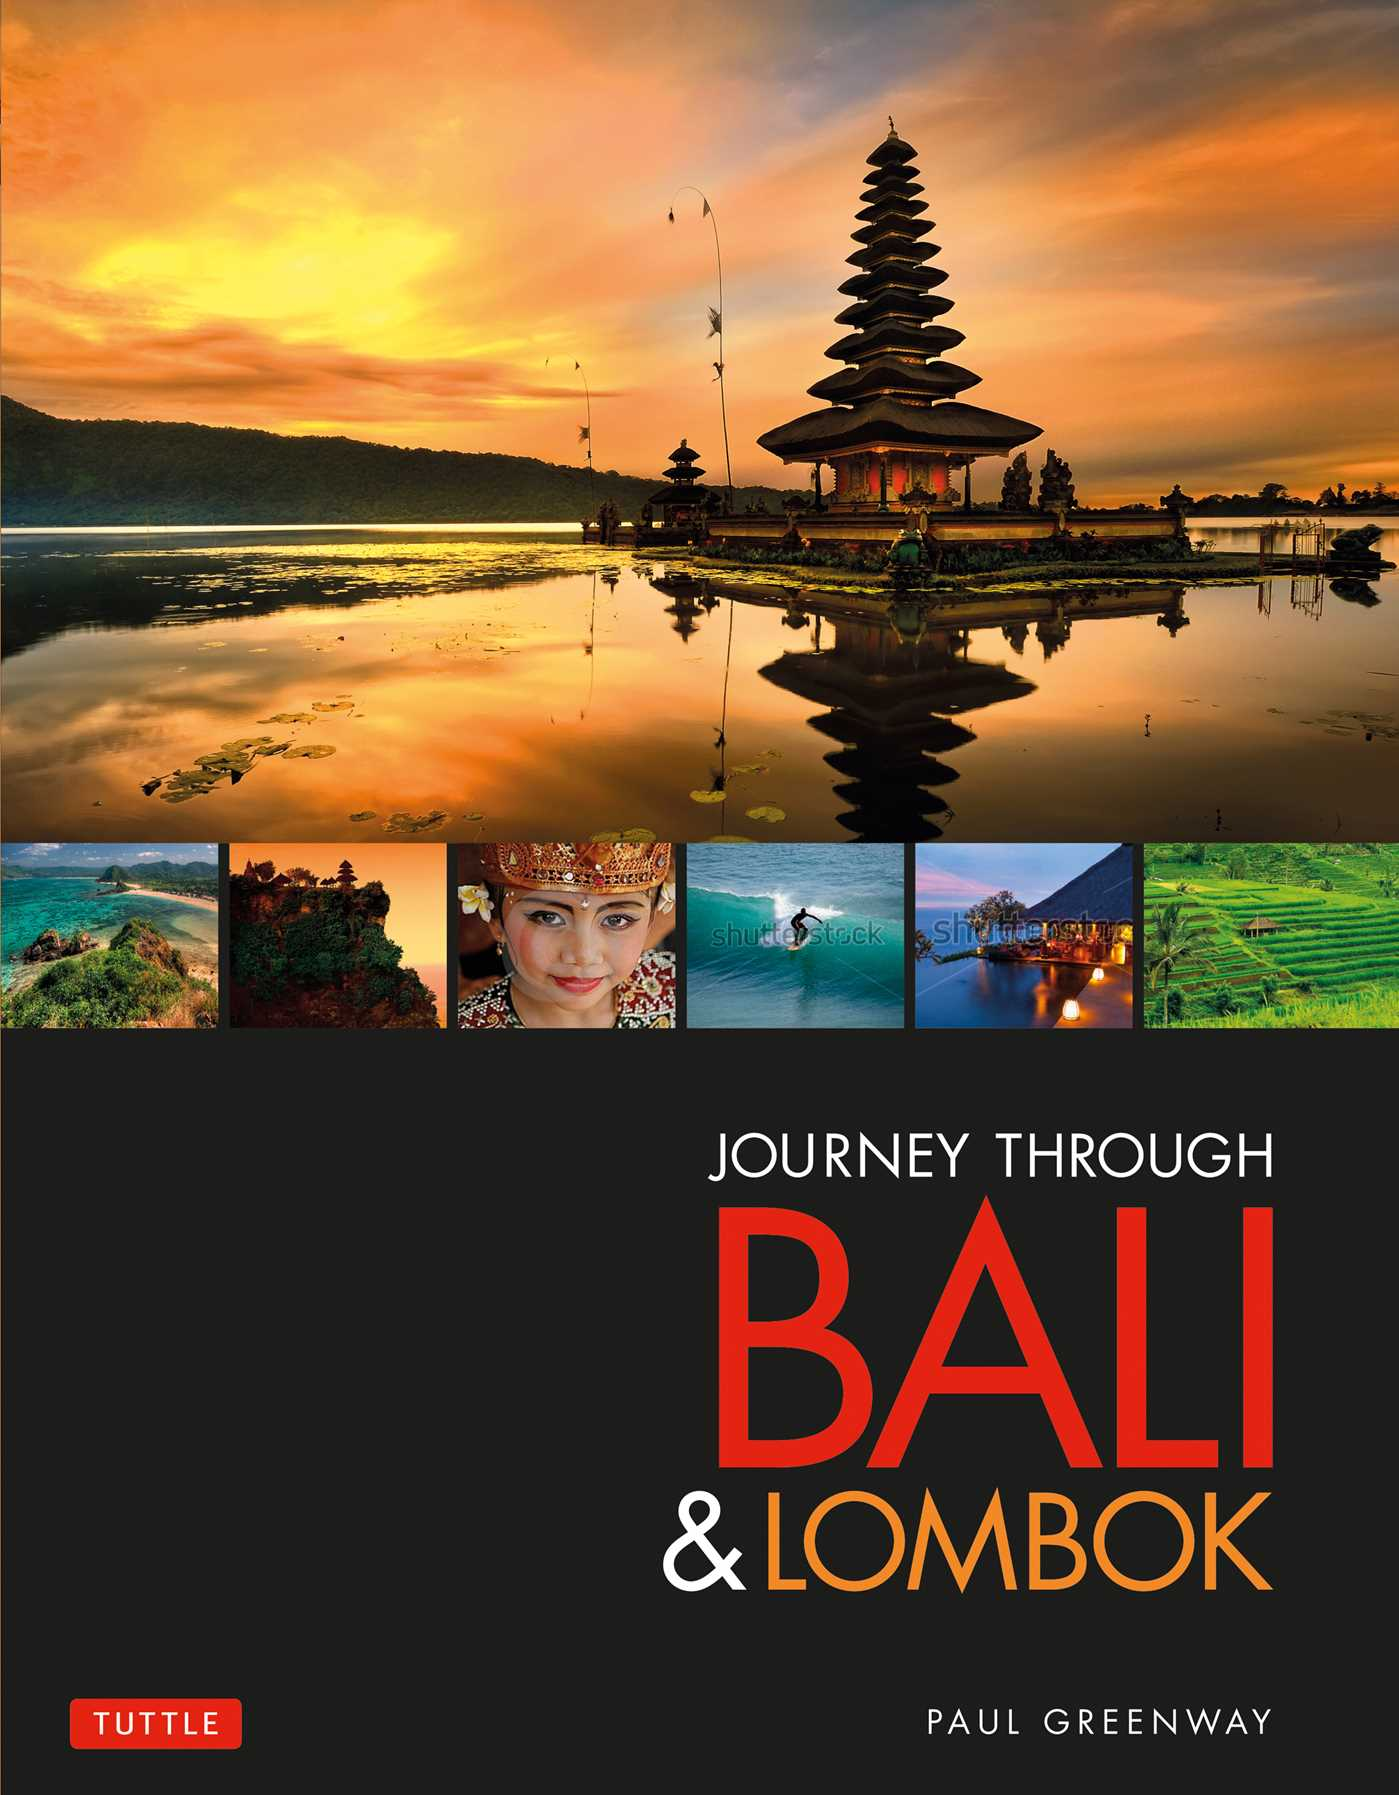 Journey-through-bali-lombok-9780804843867_hr